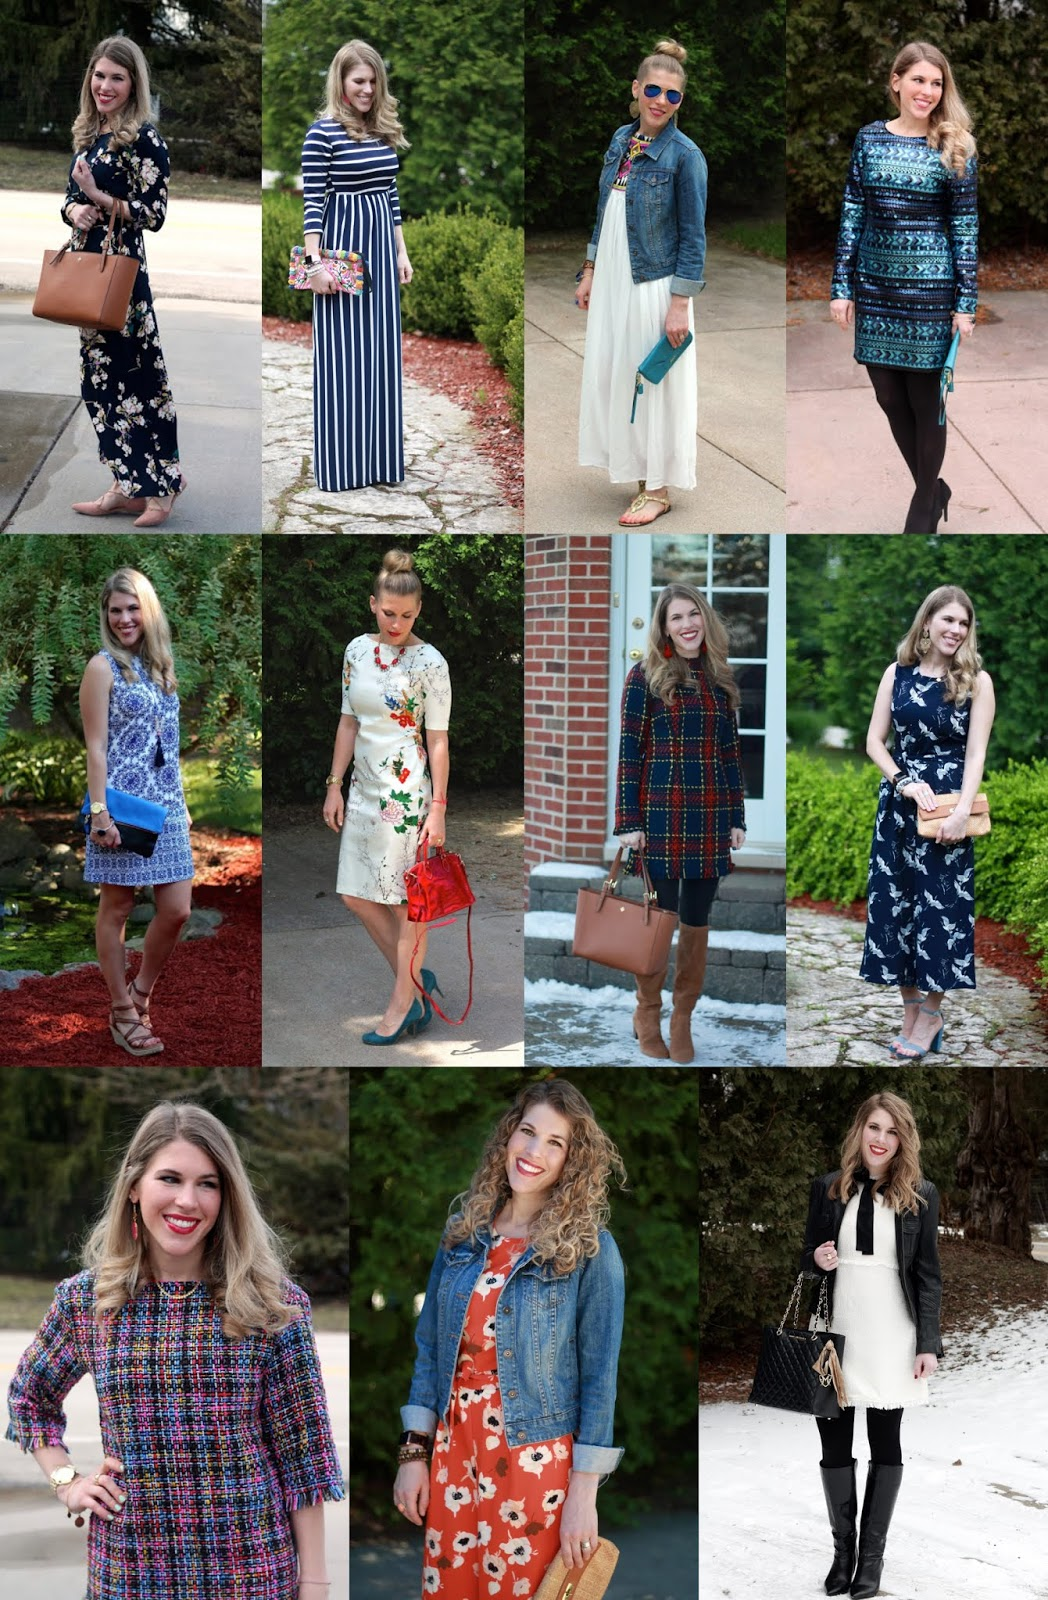 sheIn dresses and jumpsuits